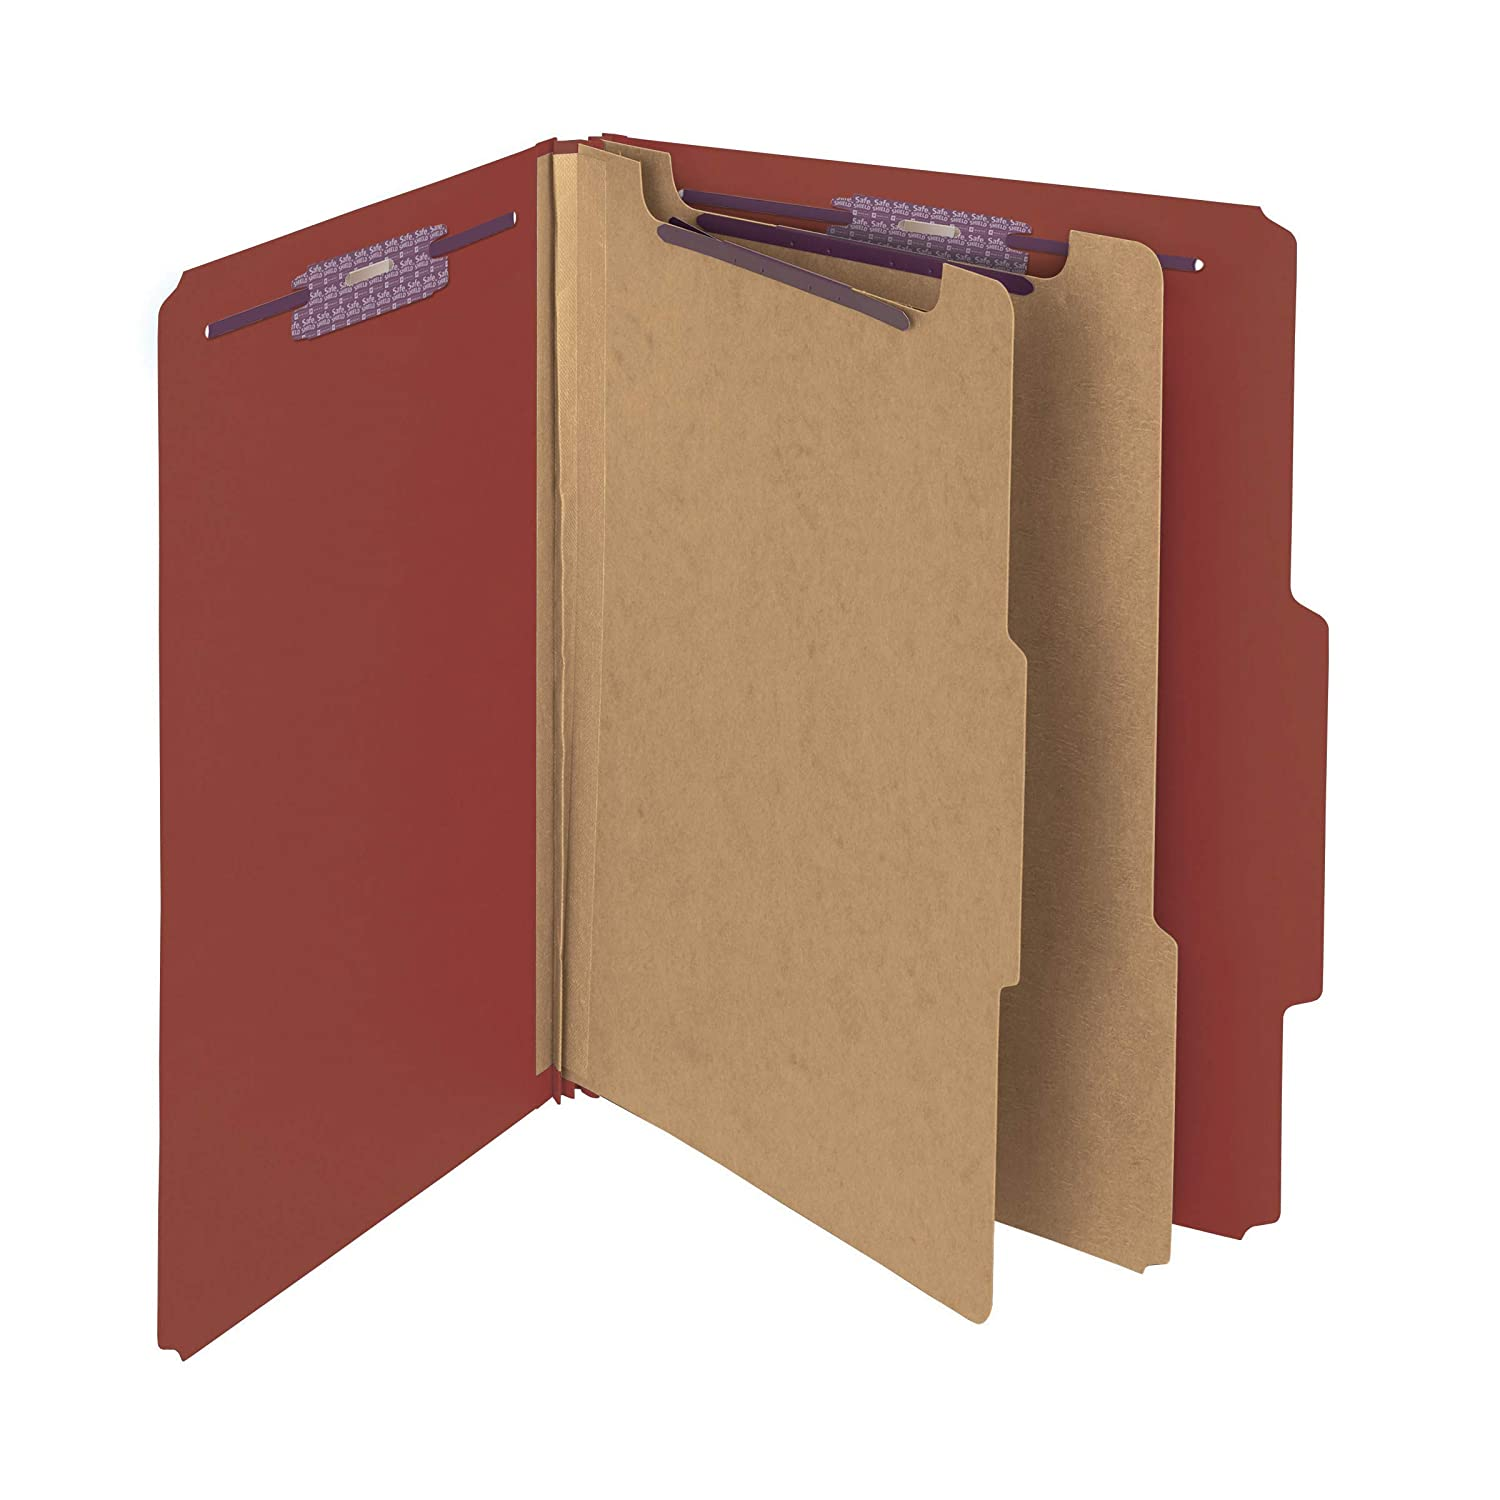 "Smead Pressboard Classification File Folder with SafeSHIELD Fasteners, 2 Dividers, 2"" Expansion, Letter Size, Red, 10 per Box (14073)"